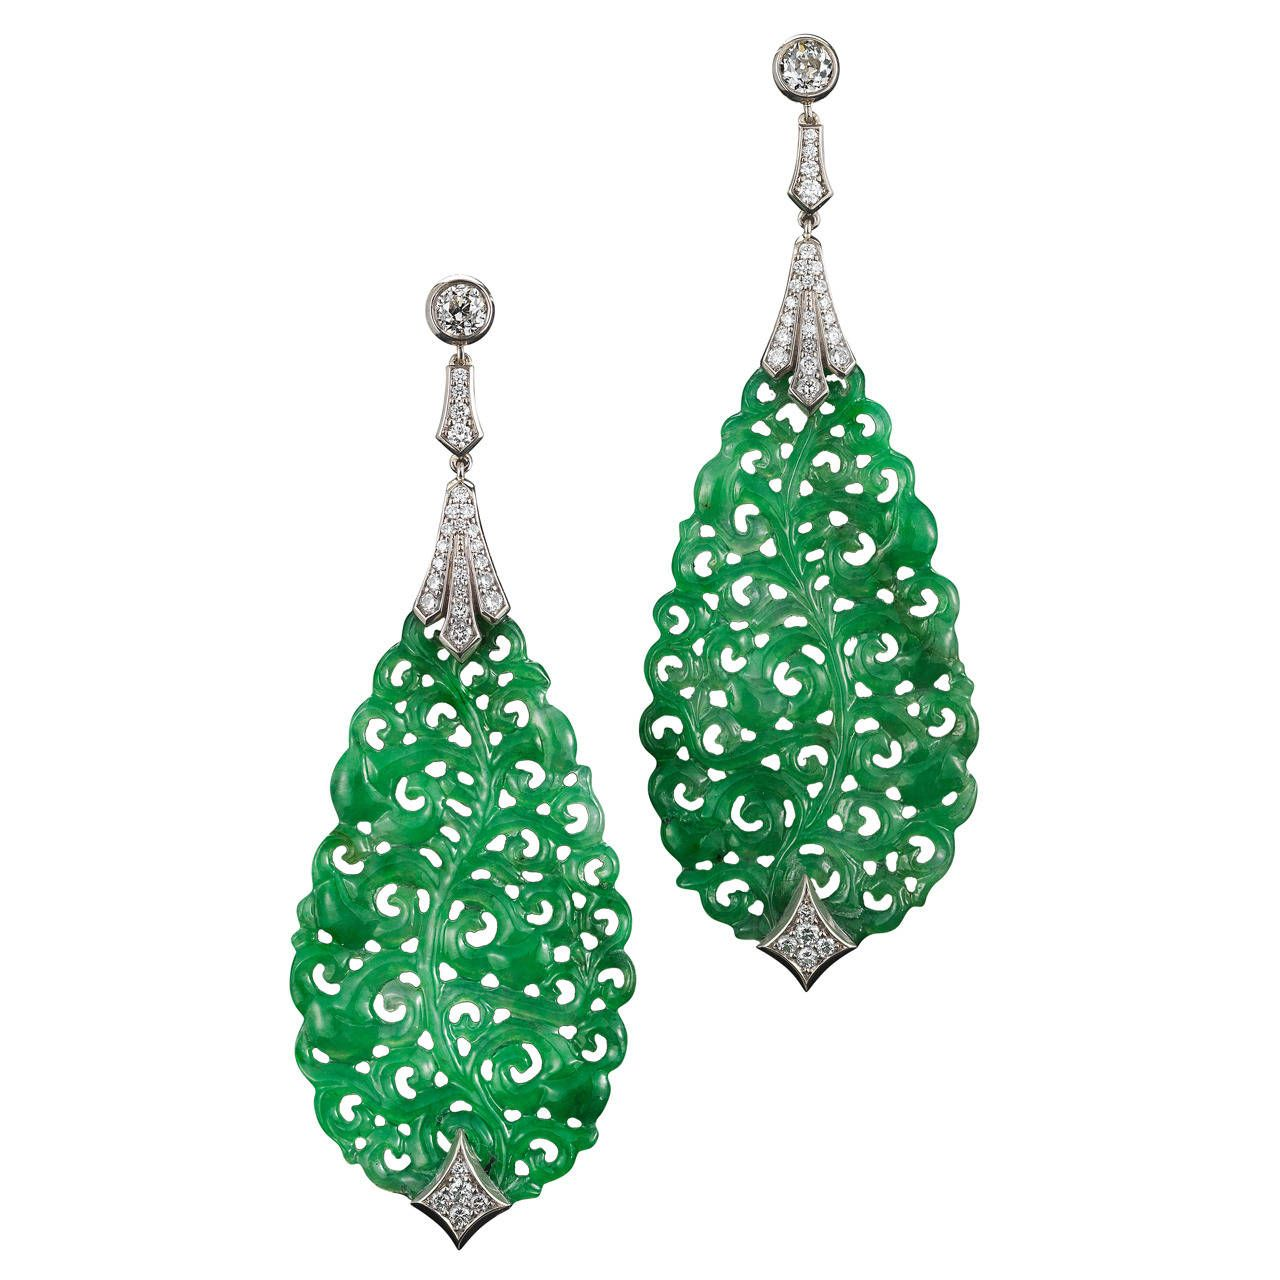 Fred Leighton Carved Jade and Diamond Foliate Pendant Earrings. Pierced floral motif jadeite drops are accented with a total of approximately 1.14 carats of round diamonds mounted in 18 karat white gold. The jade plaques measure approximately 48 by 25 millimeters and the earring measures approximately 3 inches in length.